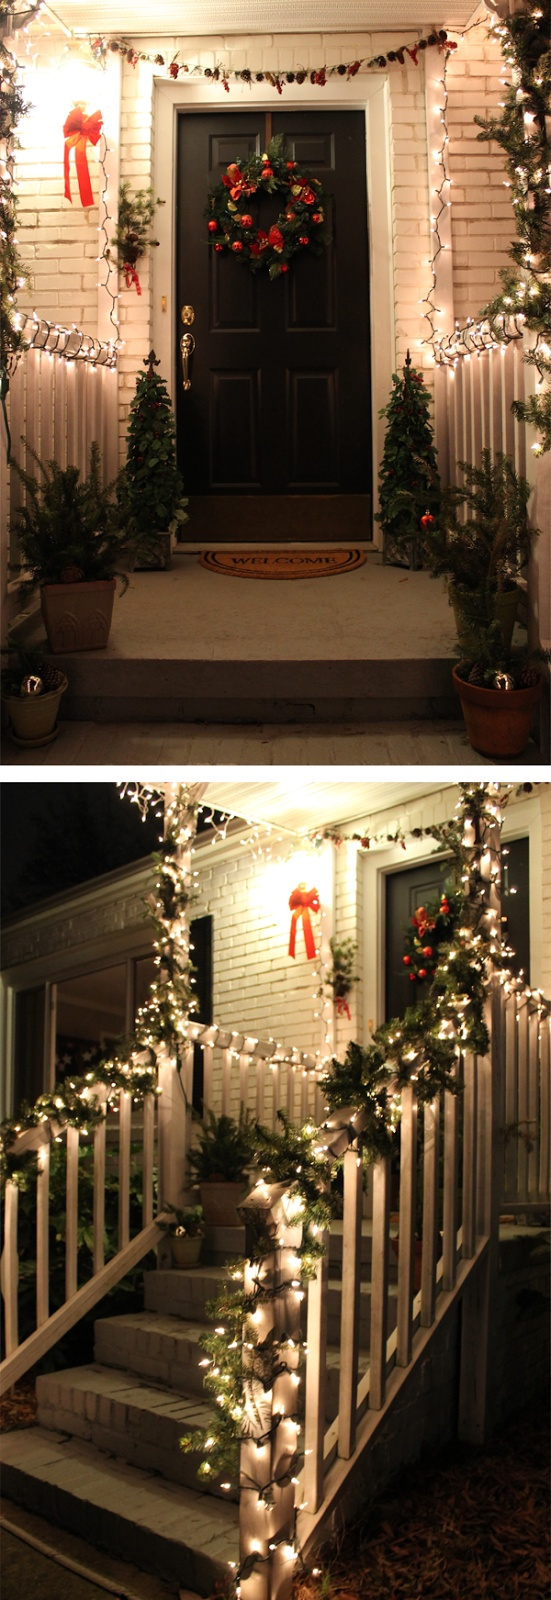 125 best christmas glitz and glamour images on pinterest 125 best christmas glitz and glamour images on pinterest christmas ideas christmas crafts and christmas villages